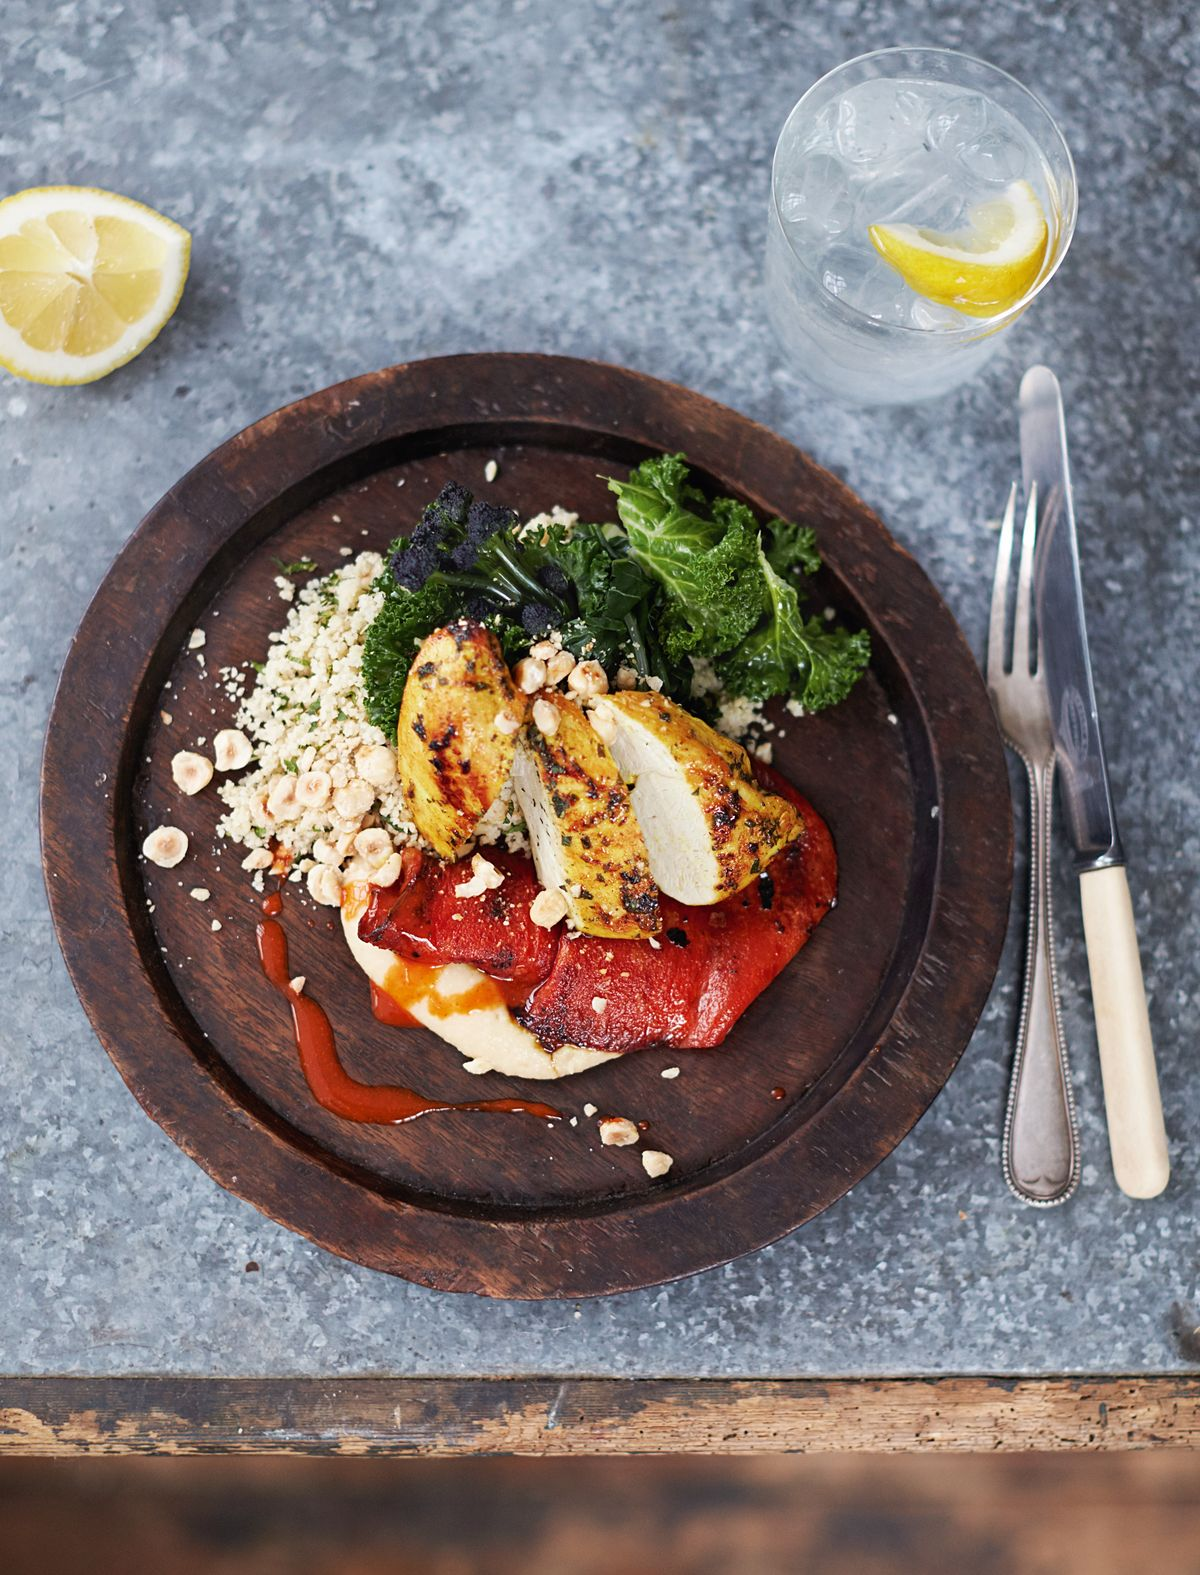 Seared Turmeric Chicken Houmous, Peppers, Couscous and Greens